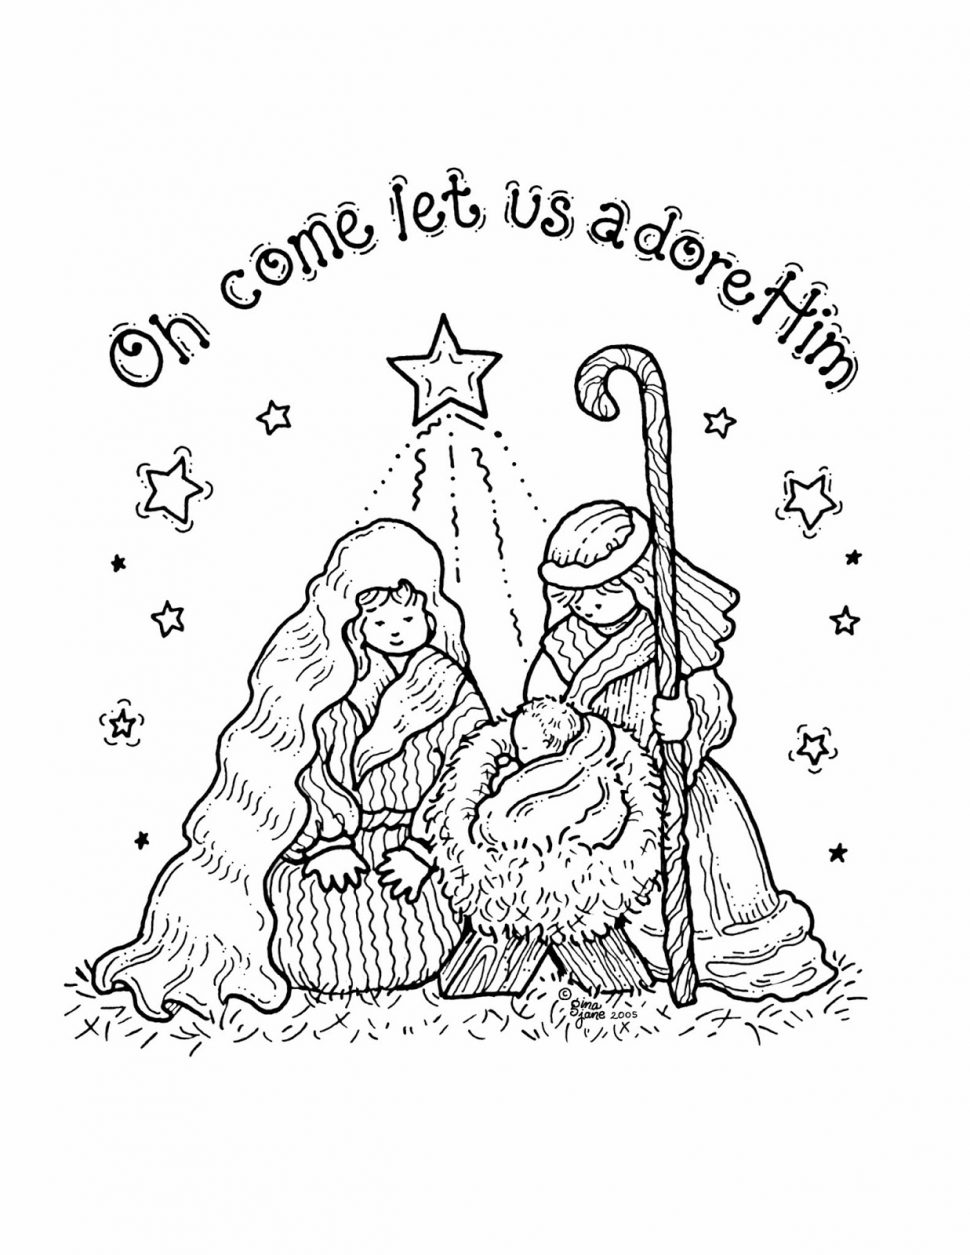 manger scene coloring page - printable nativity scene coloring pages for kids